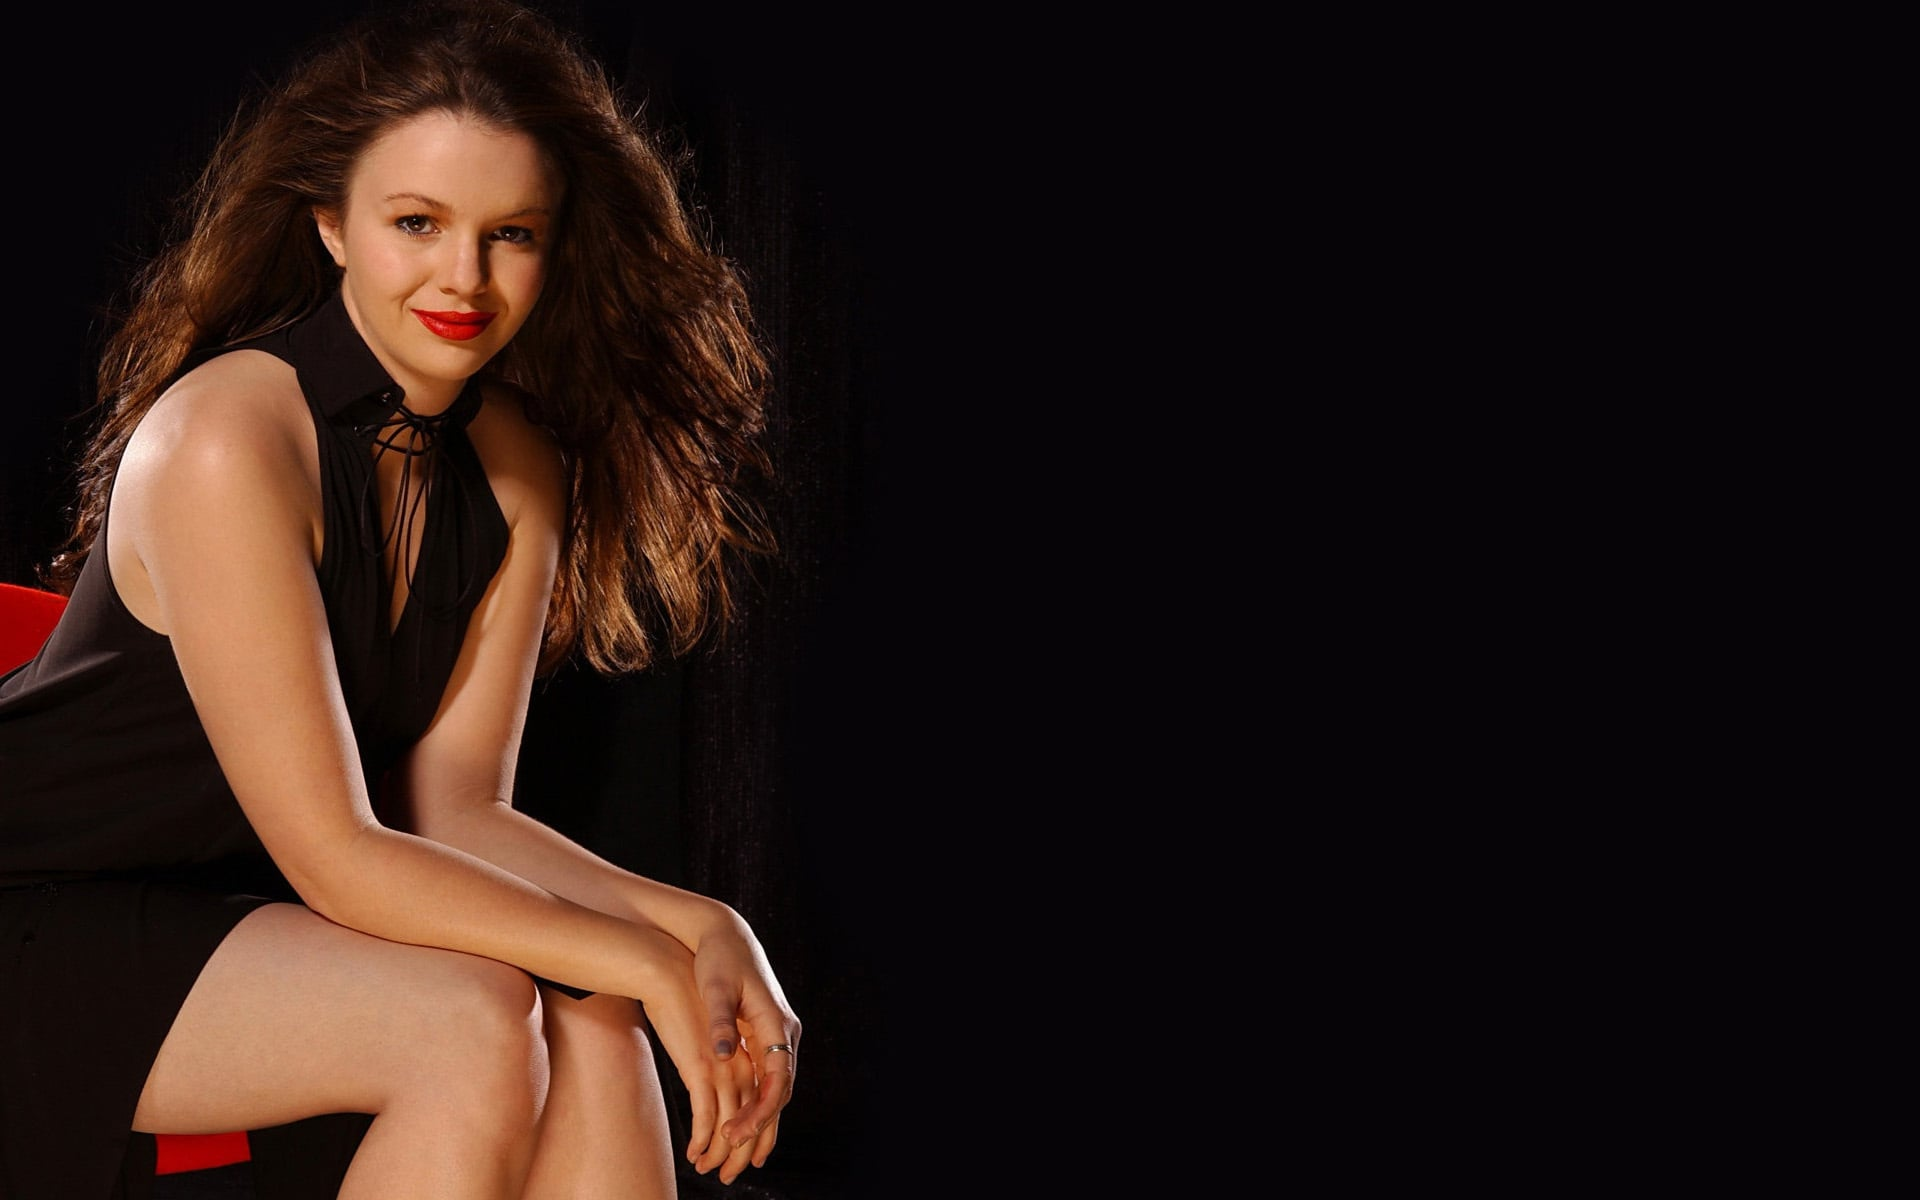 Cool Amber Tamblyn black dress HD pic for PC